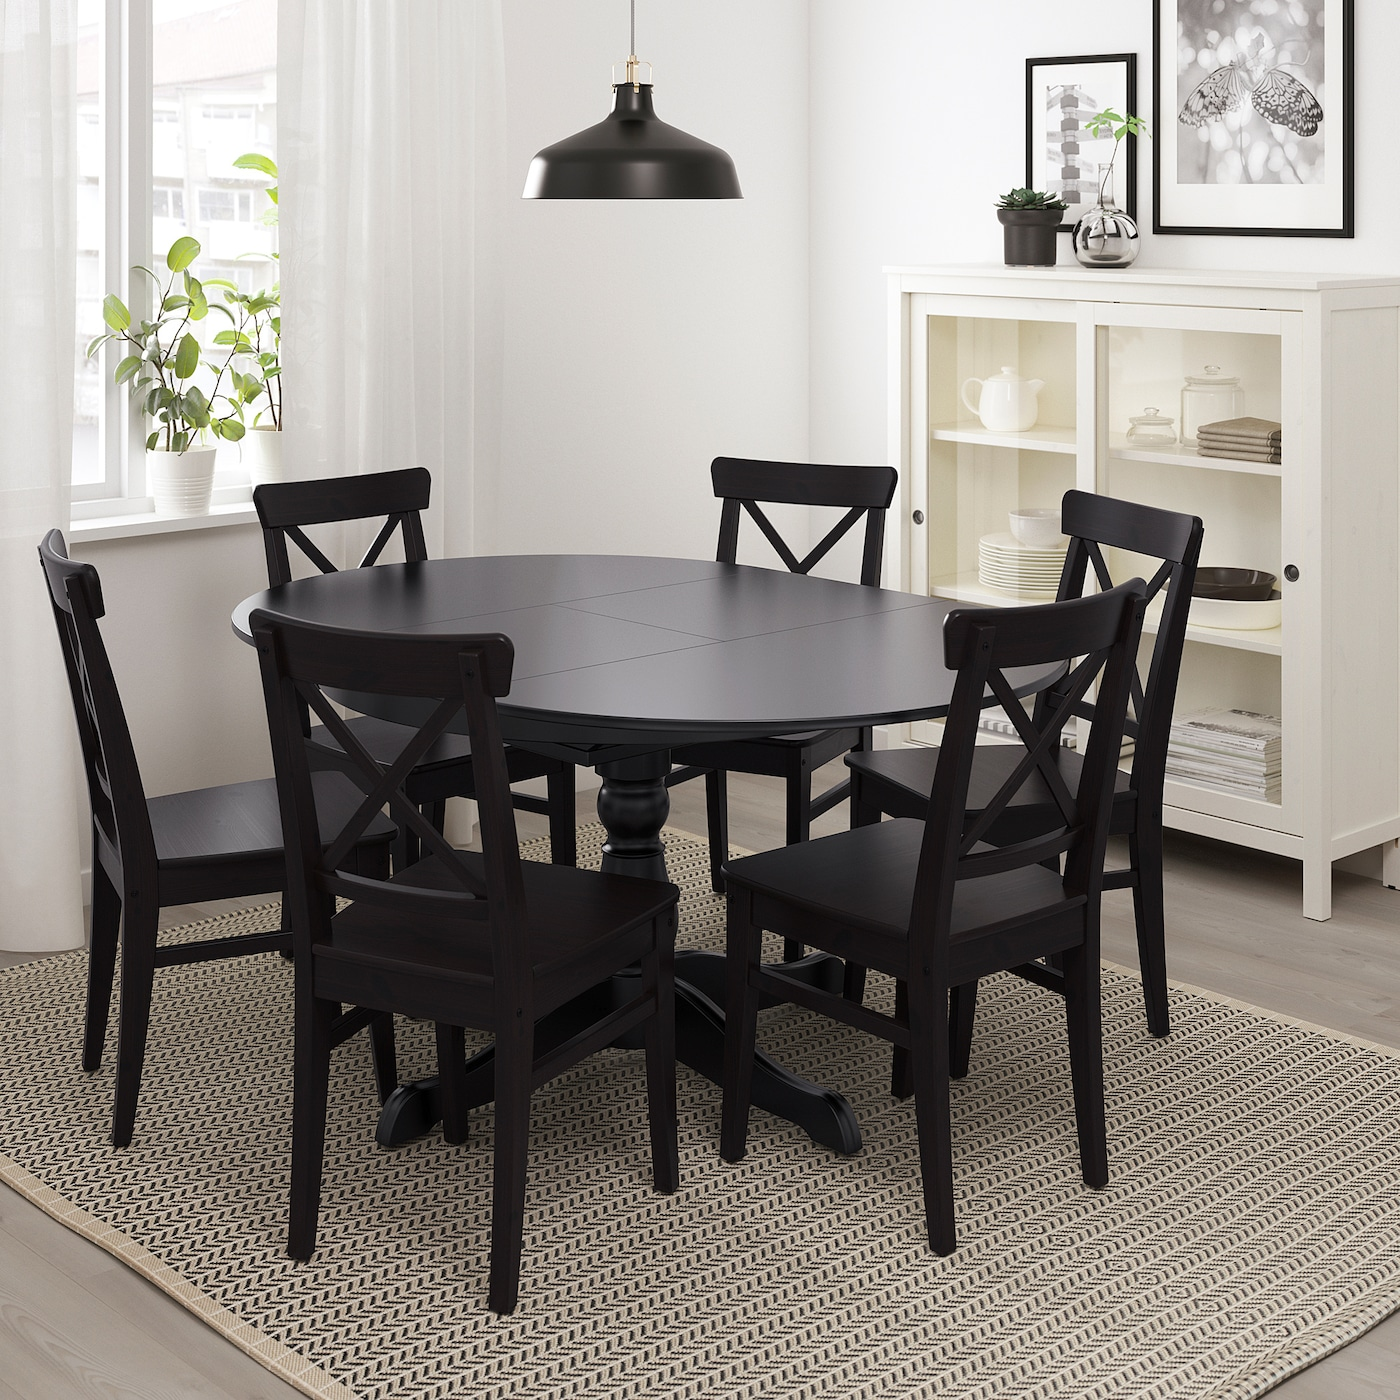 Picture of: Ingatorp Extendable Table Black Ikea